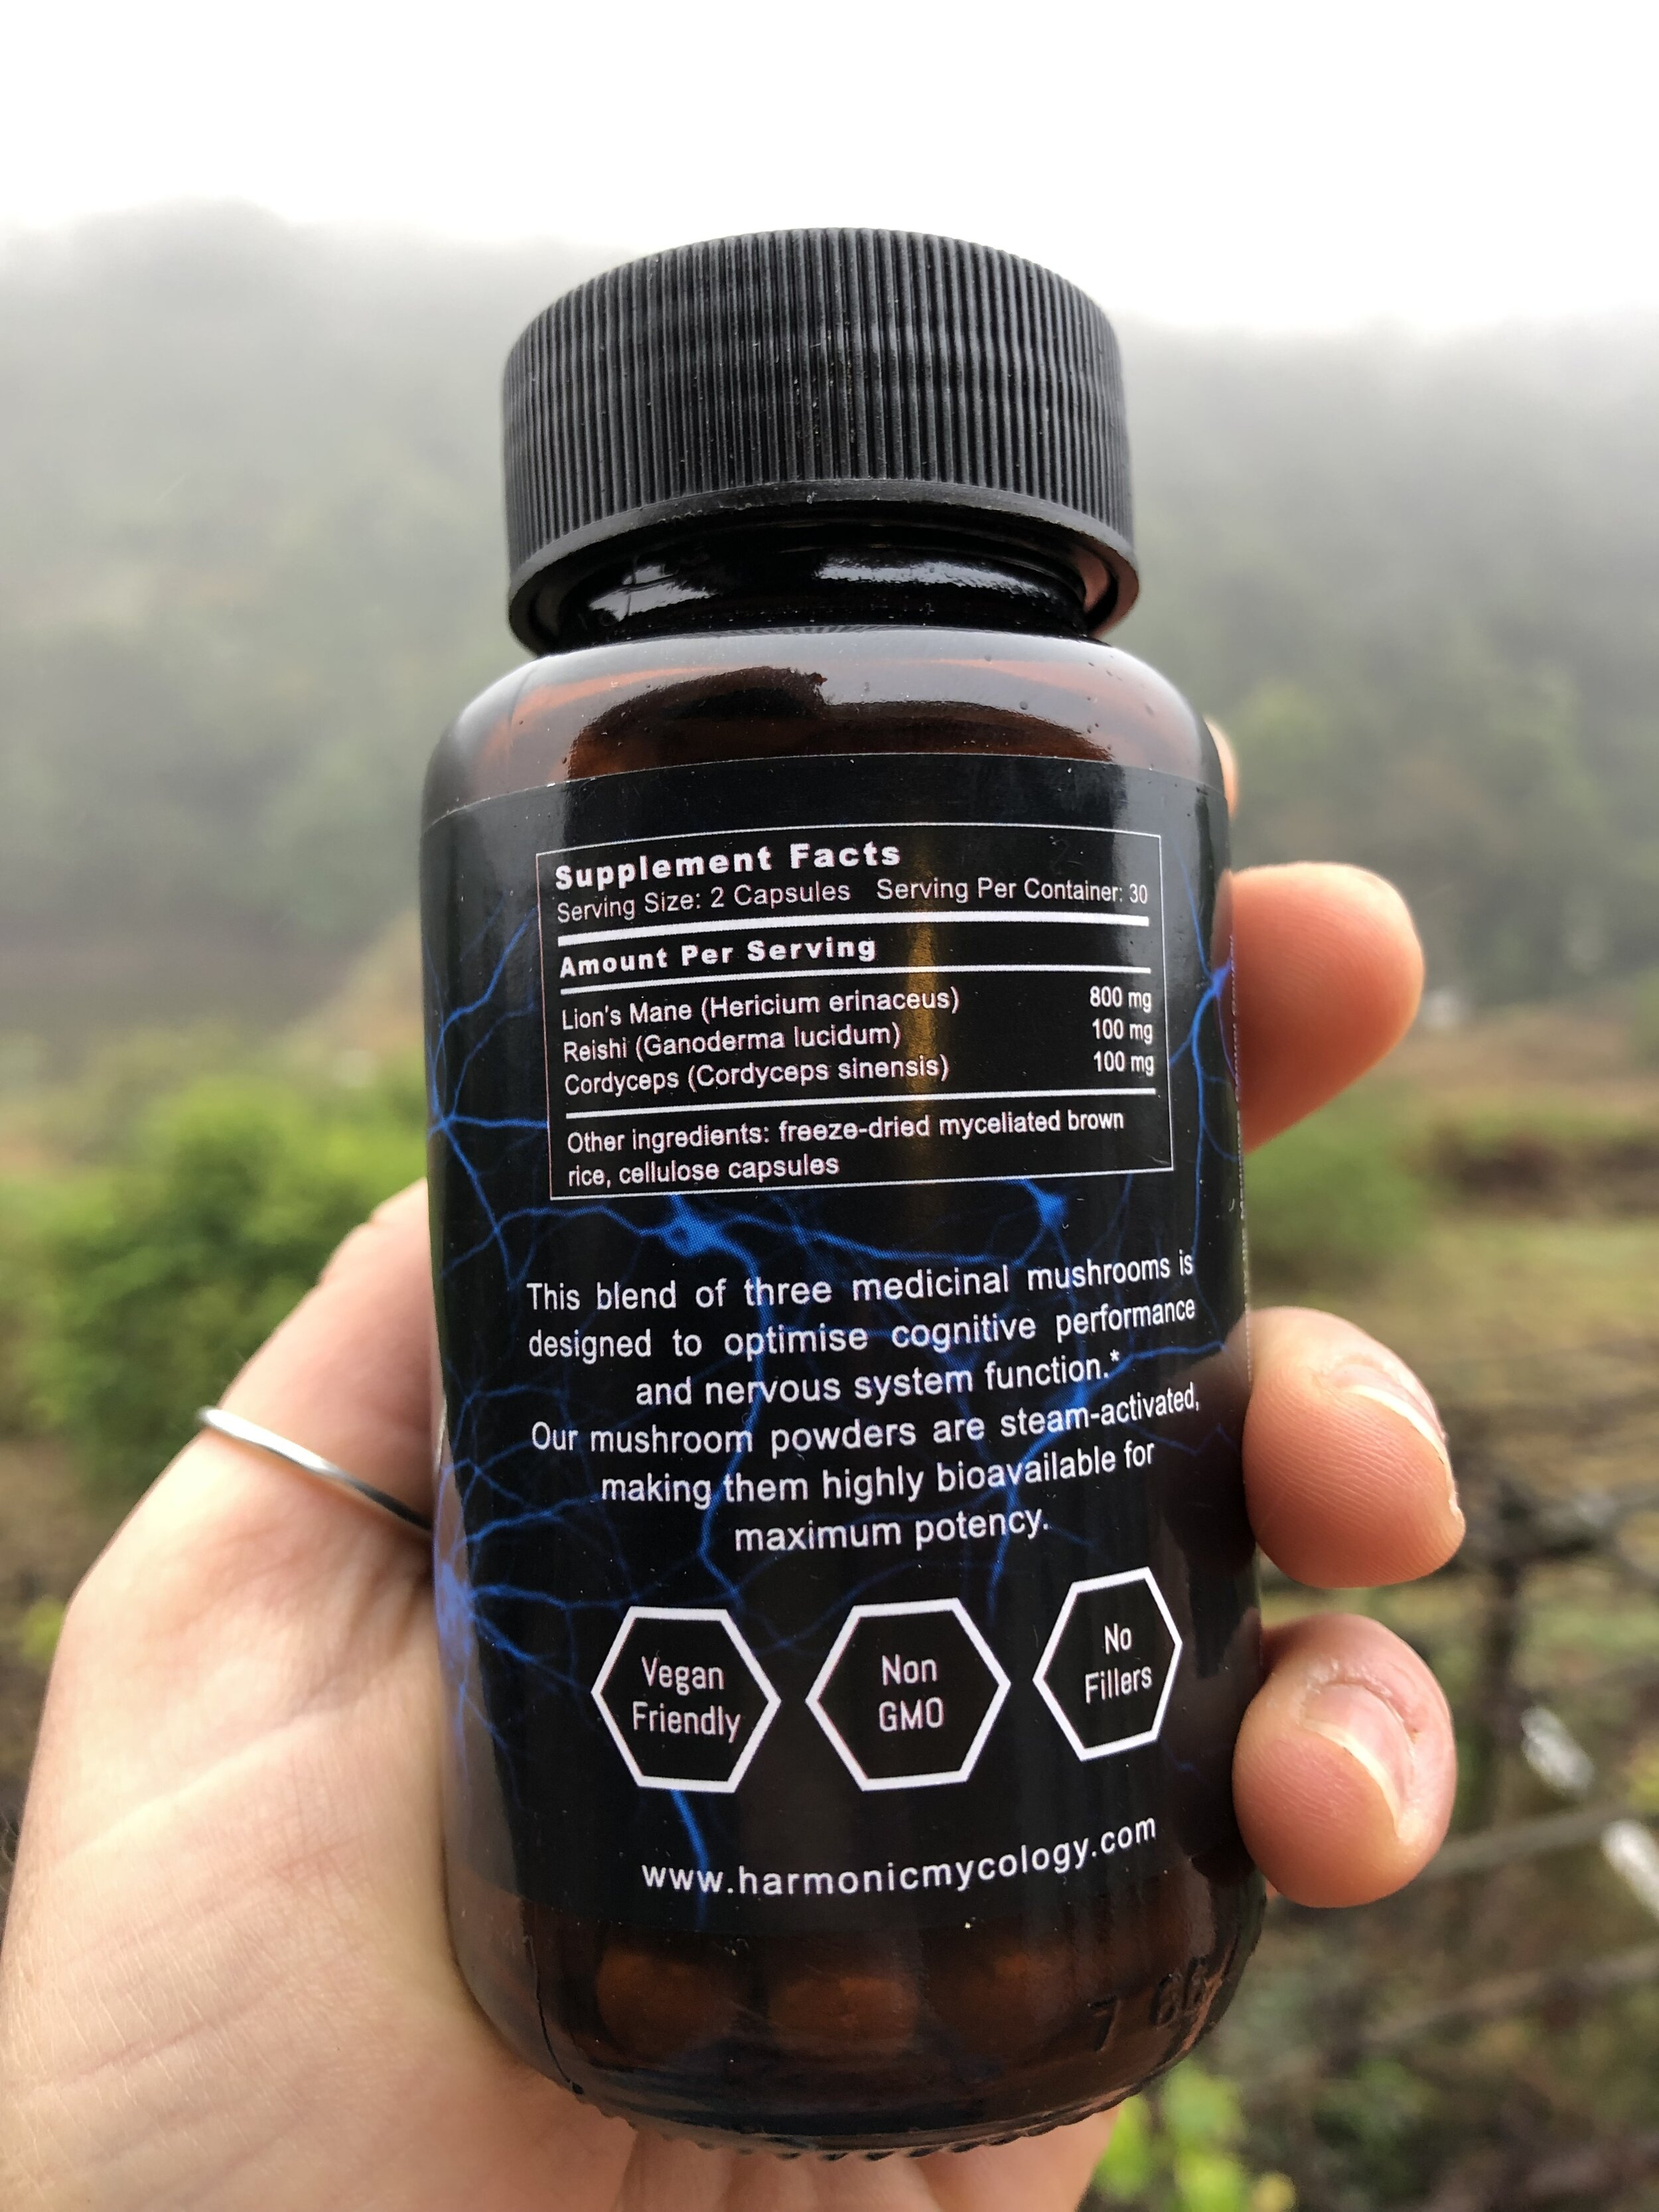 The delicious blend of shroomy ingredients. Recommended dosage is 2 capsules, taking you to 1g of medicinal mushrooms (500mg x 2).